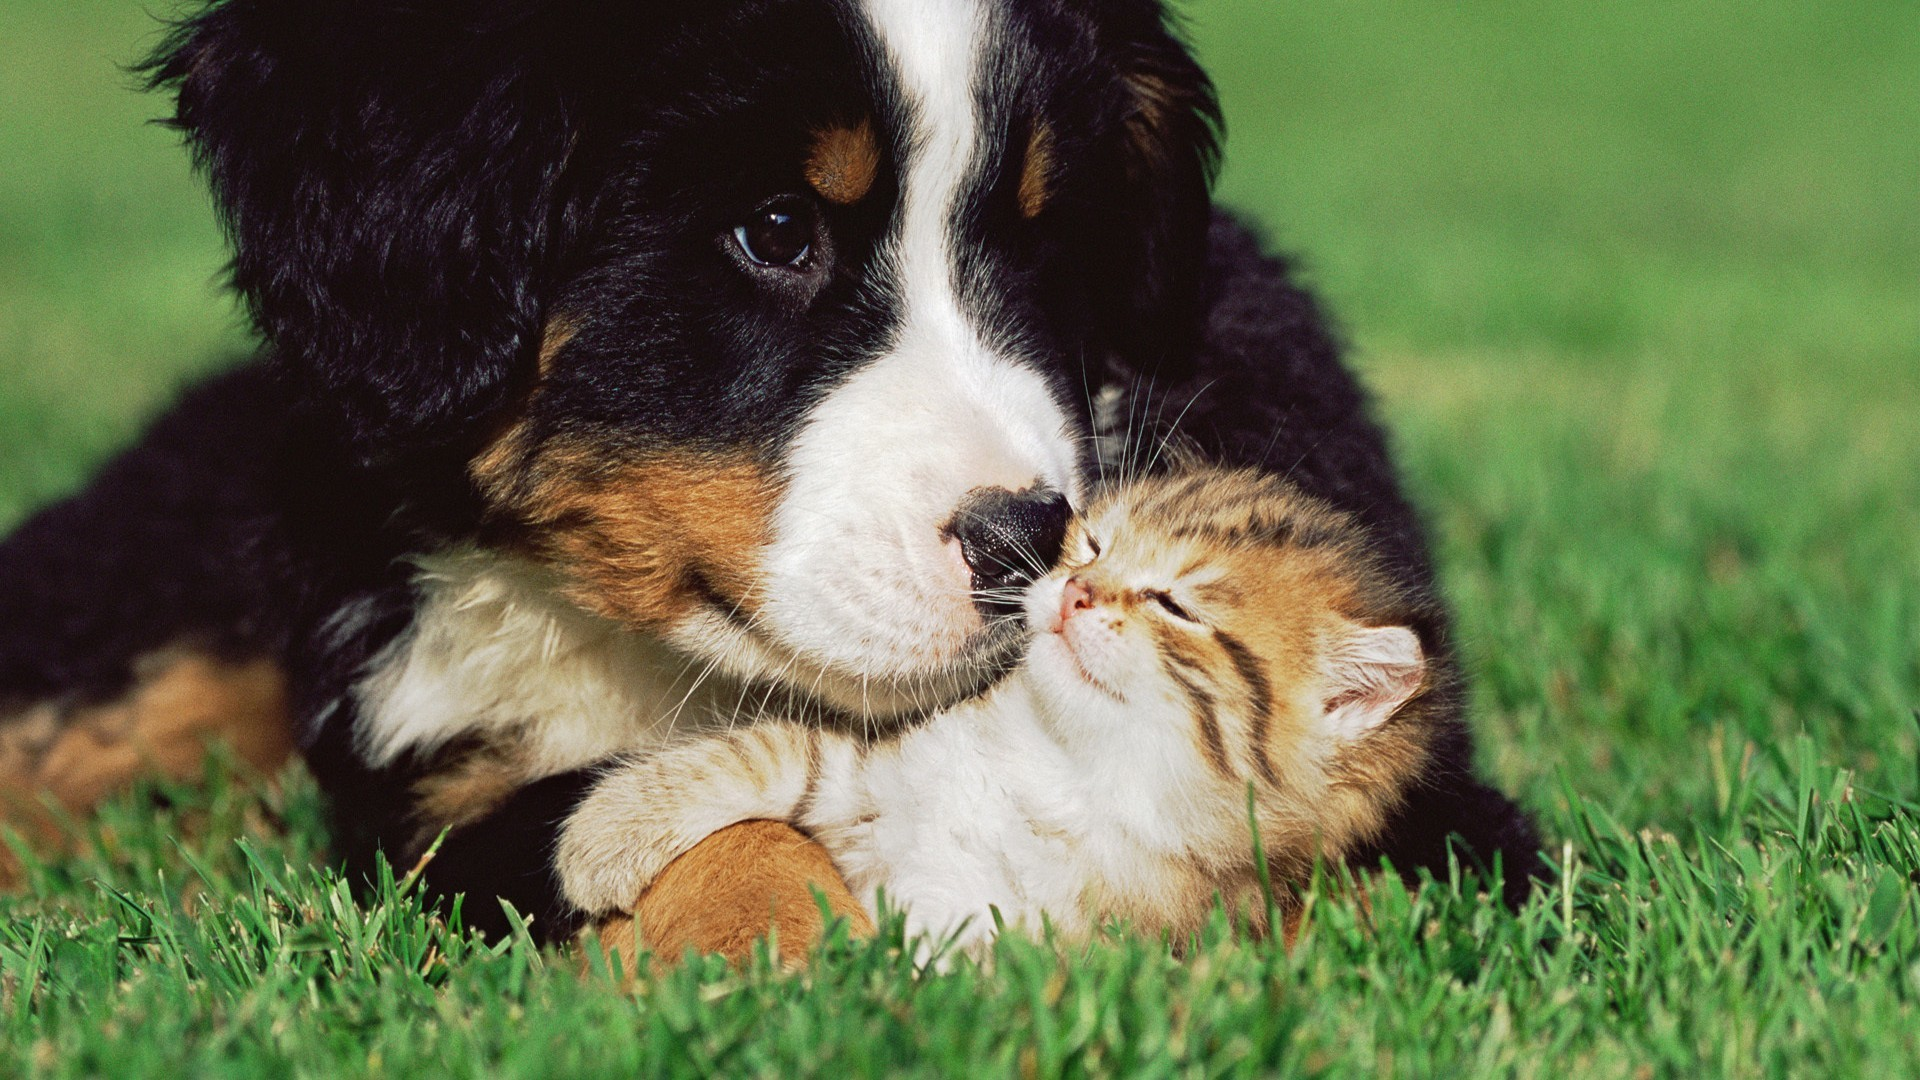 2560x1600 Desktop Search Images Of Dogs Wallpaper Download 1920x1200 Cute Puppy